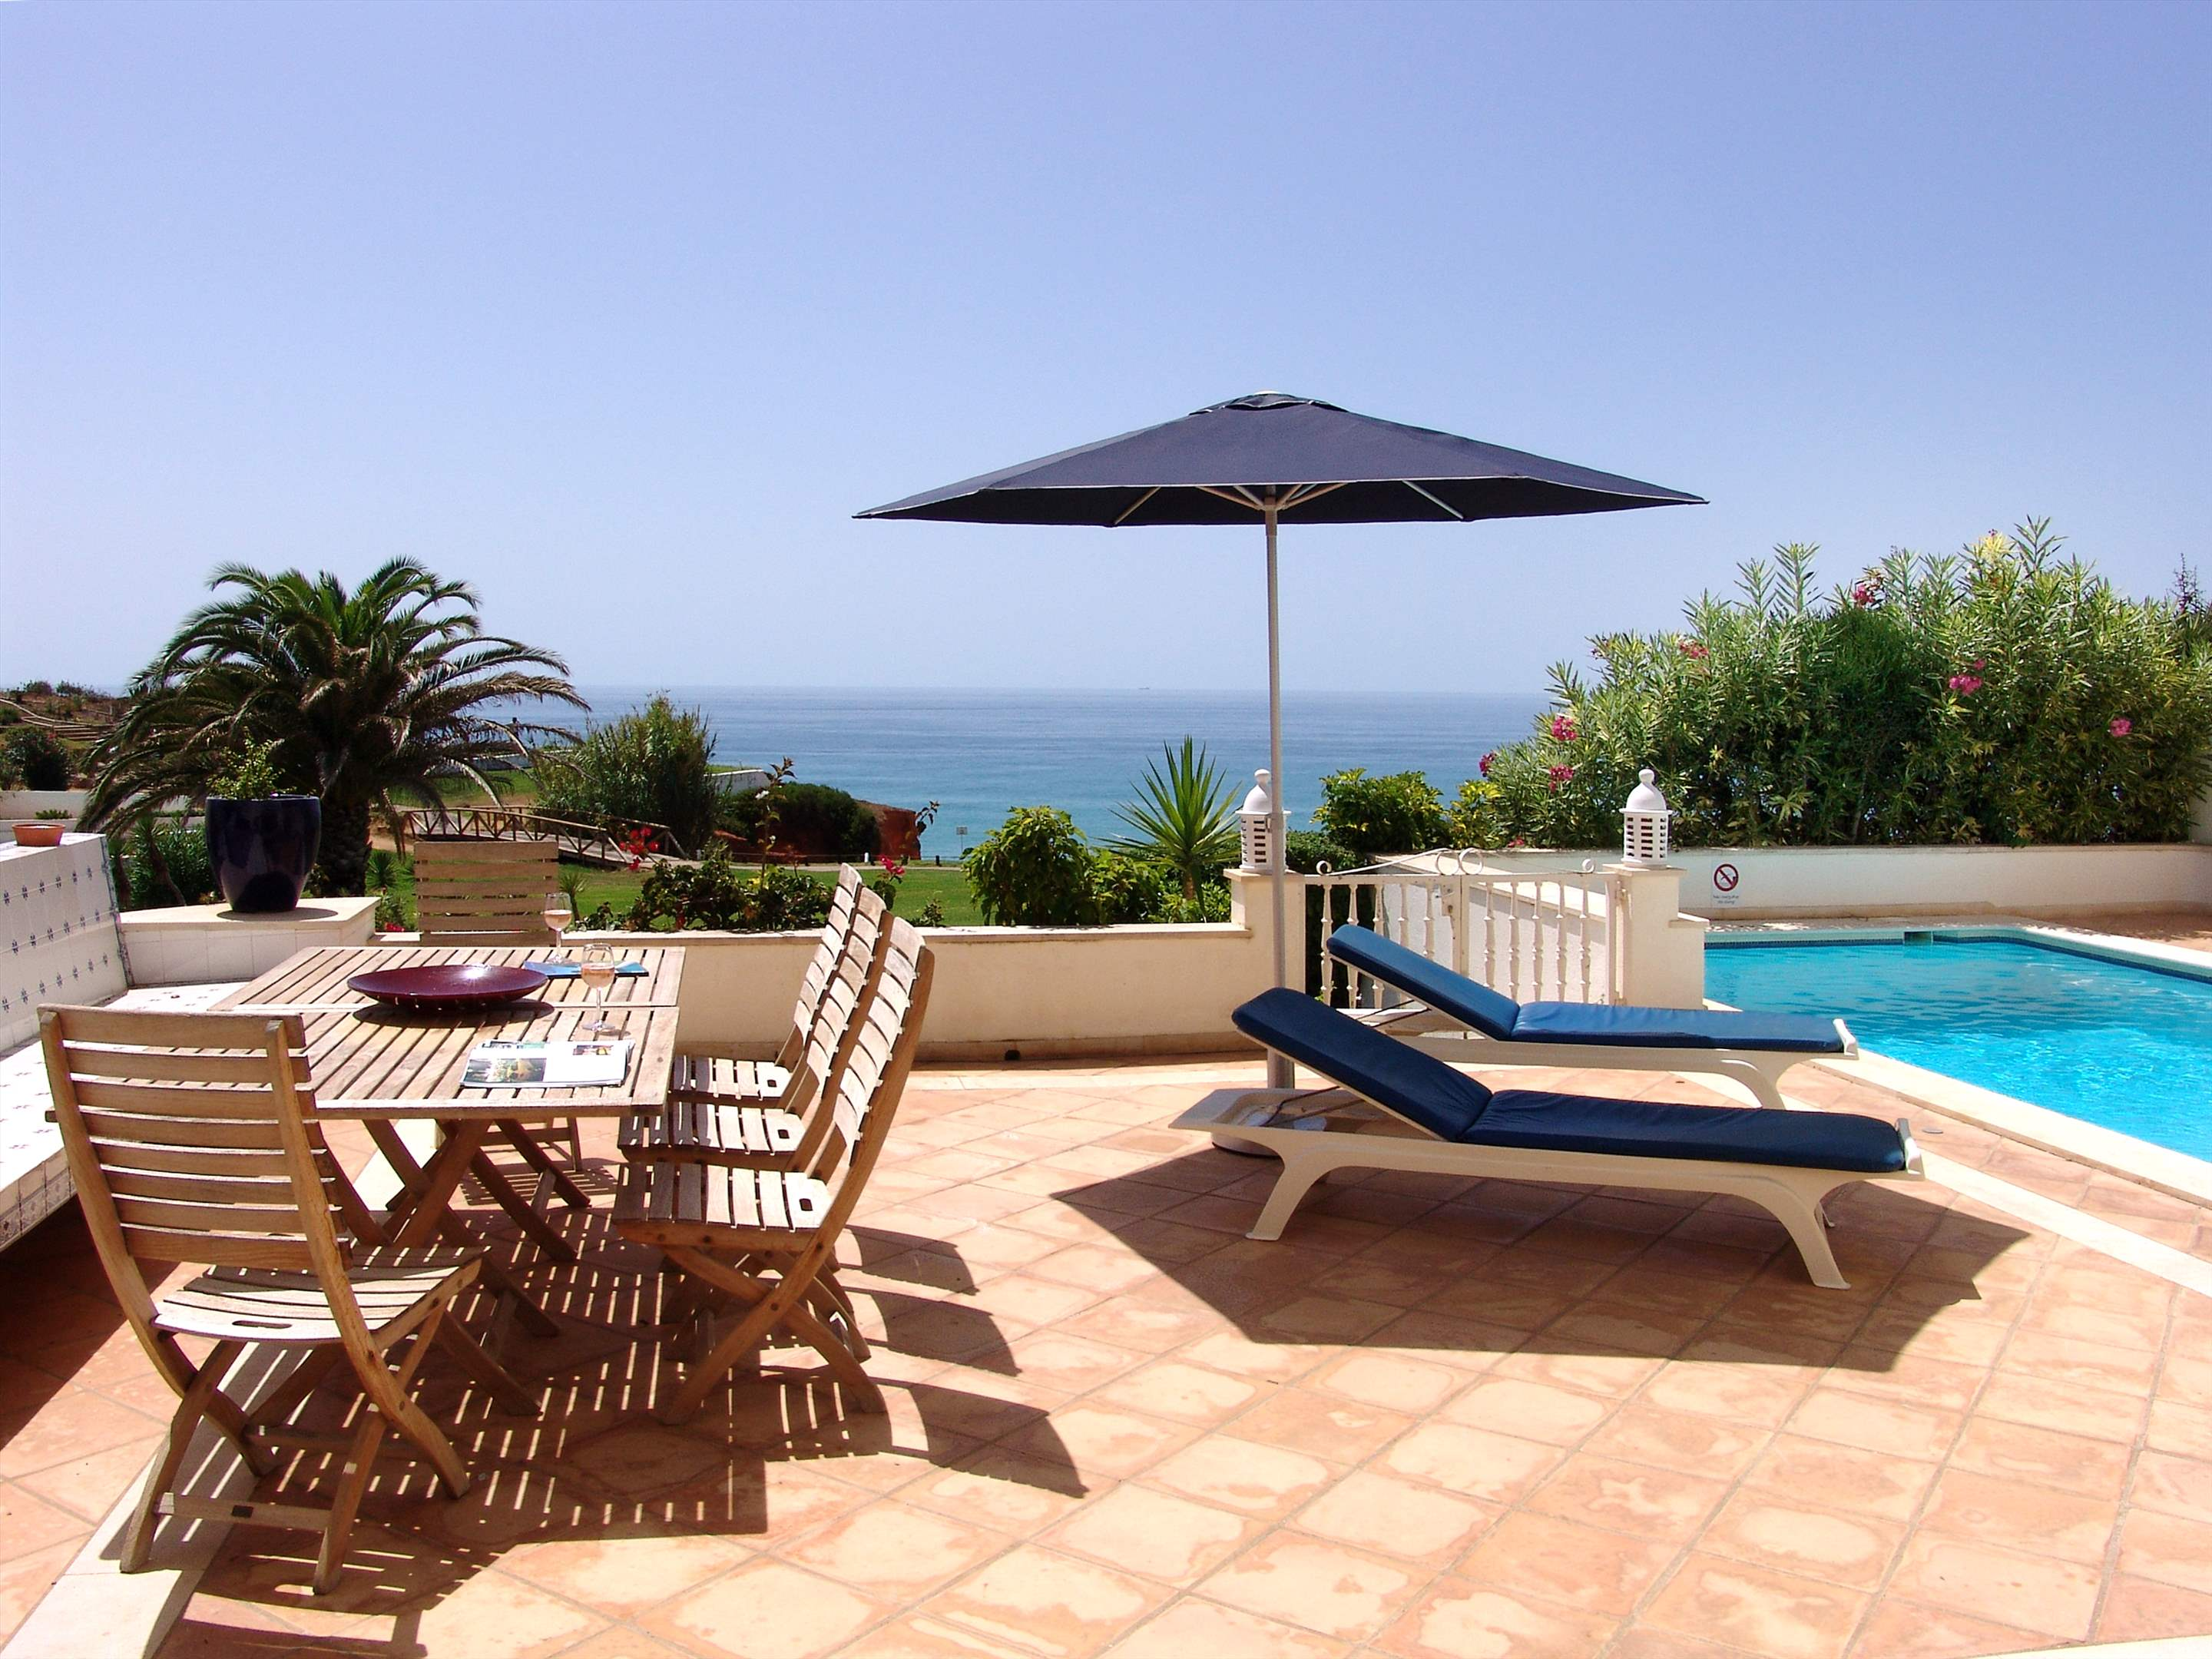 Villas Louisa, 3 bedroom, 3 bedroom villa in Vale do Lobo, Algarve Photo #12